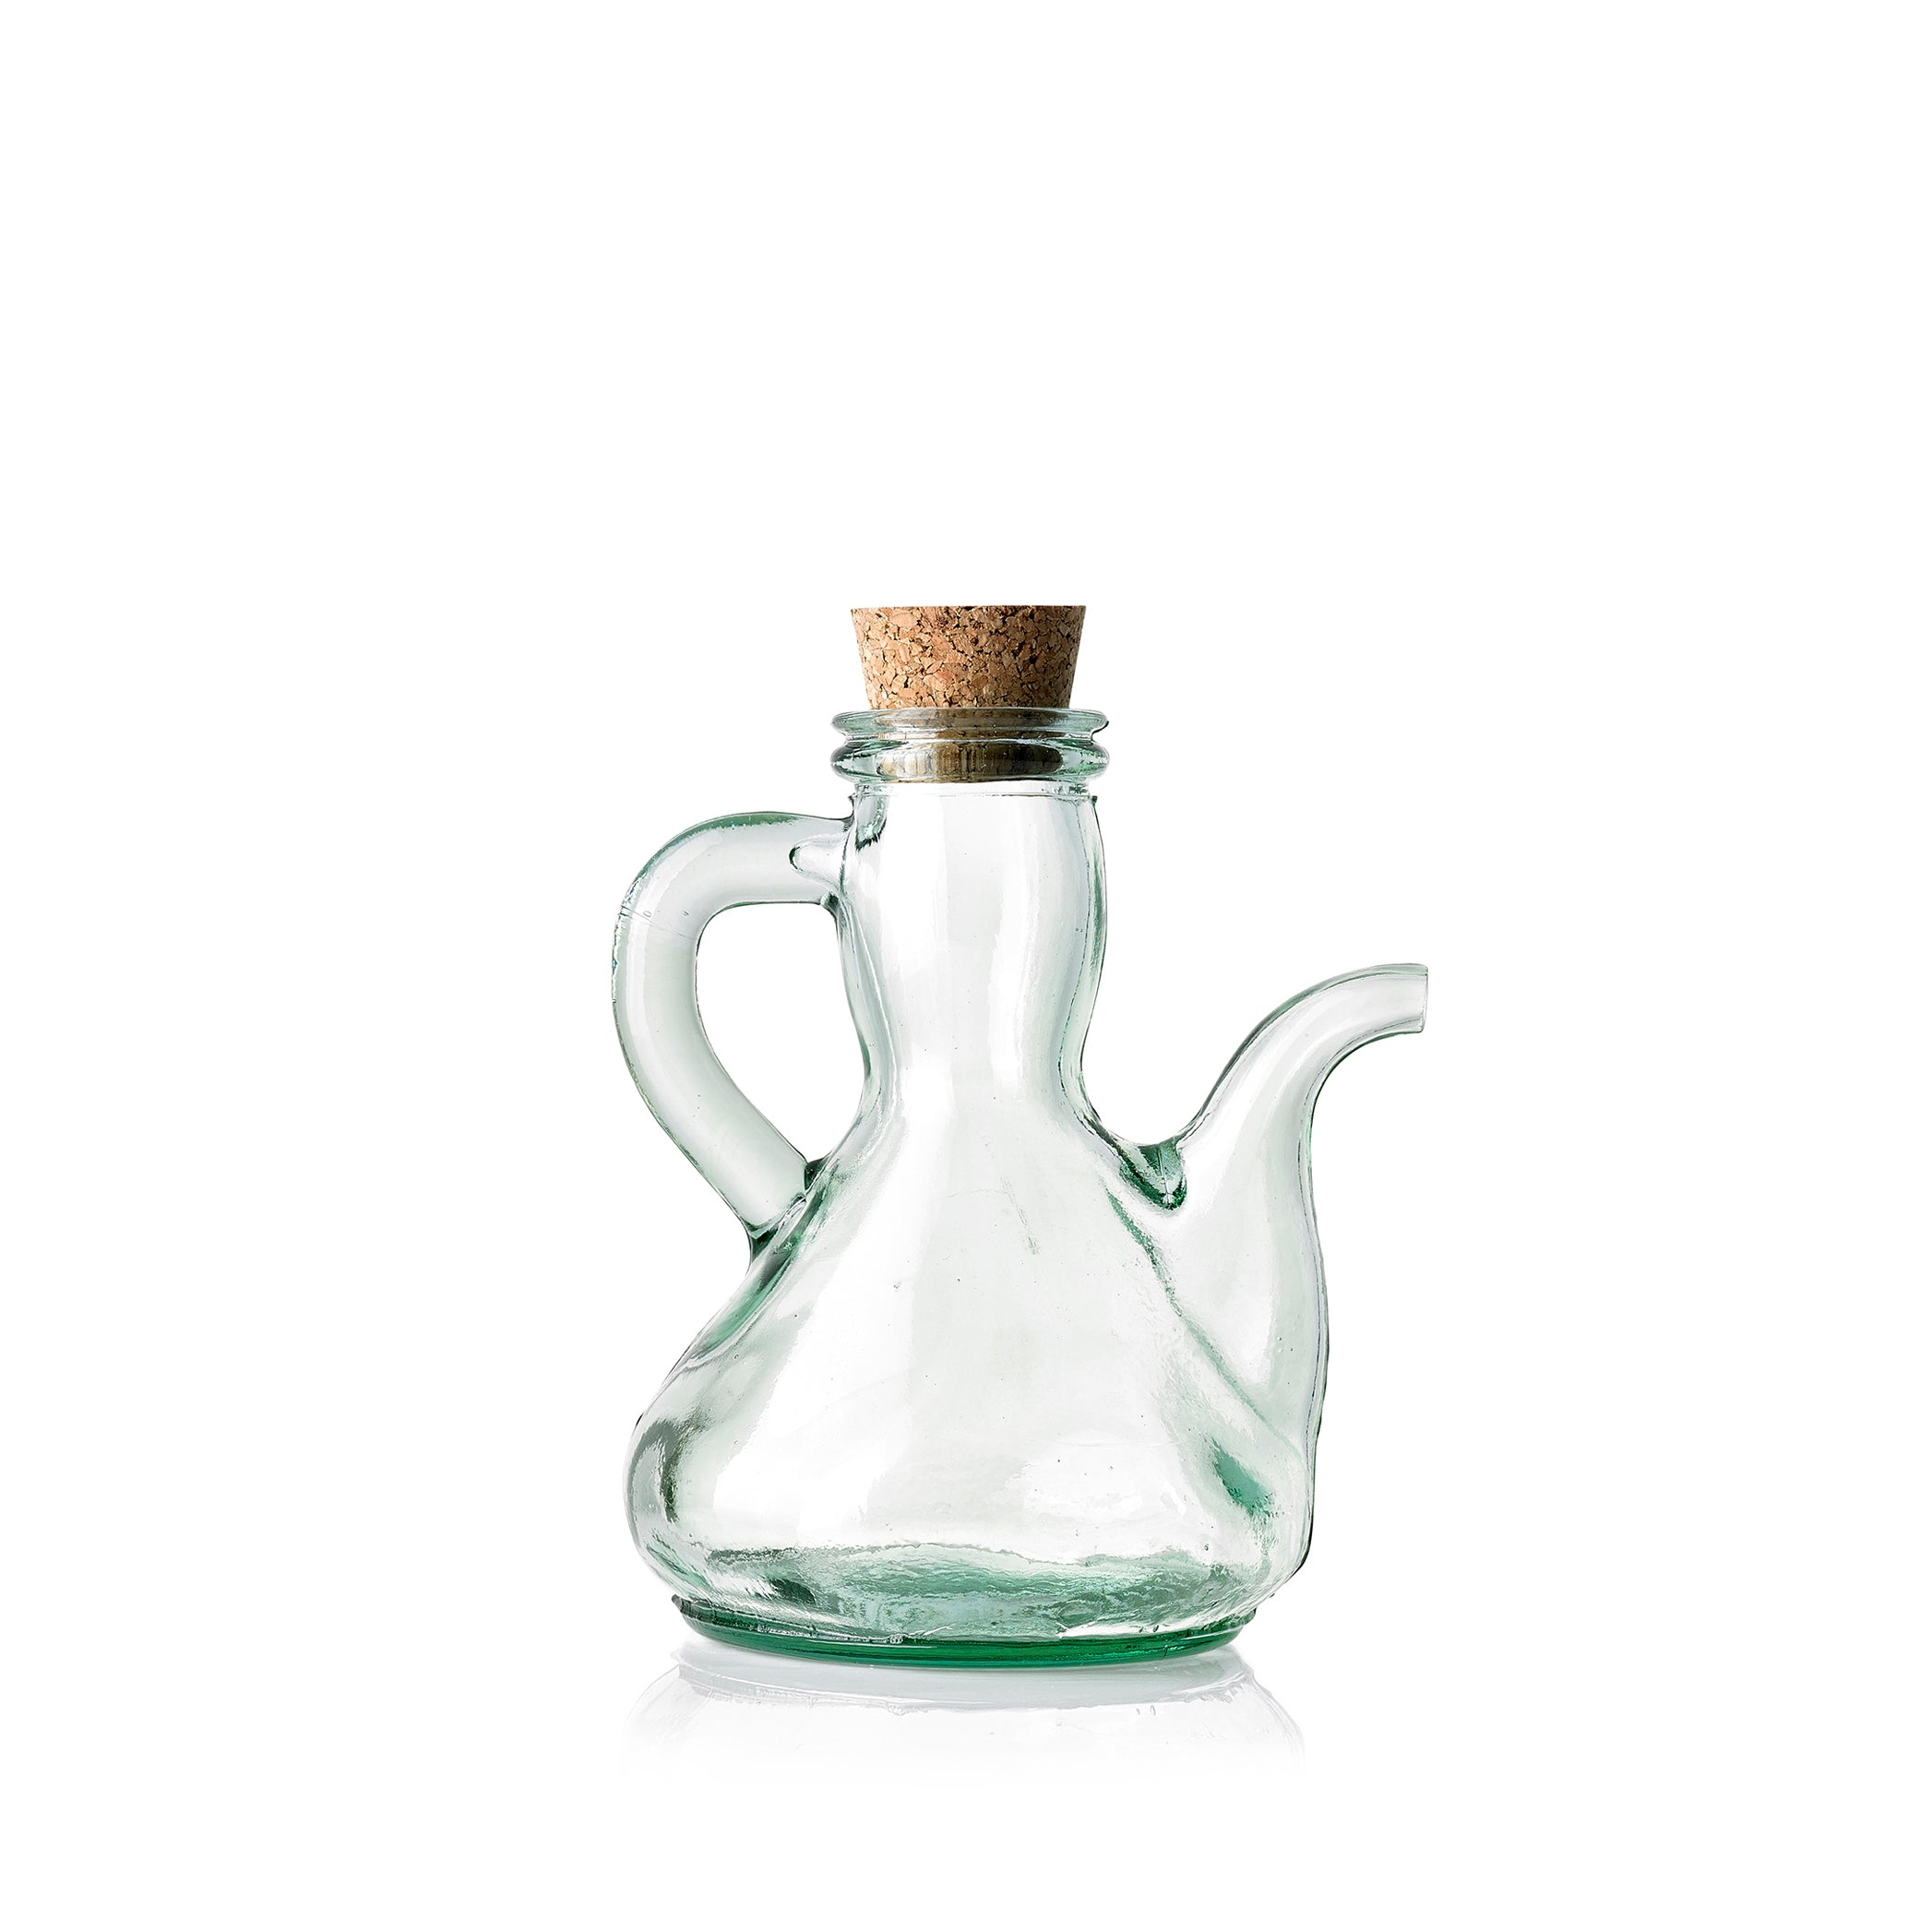 Recycled Glass Oil Pourer with Cork Stopper